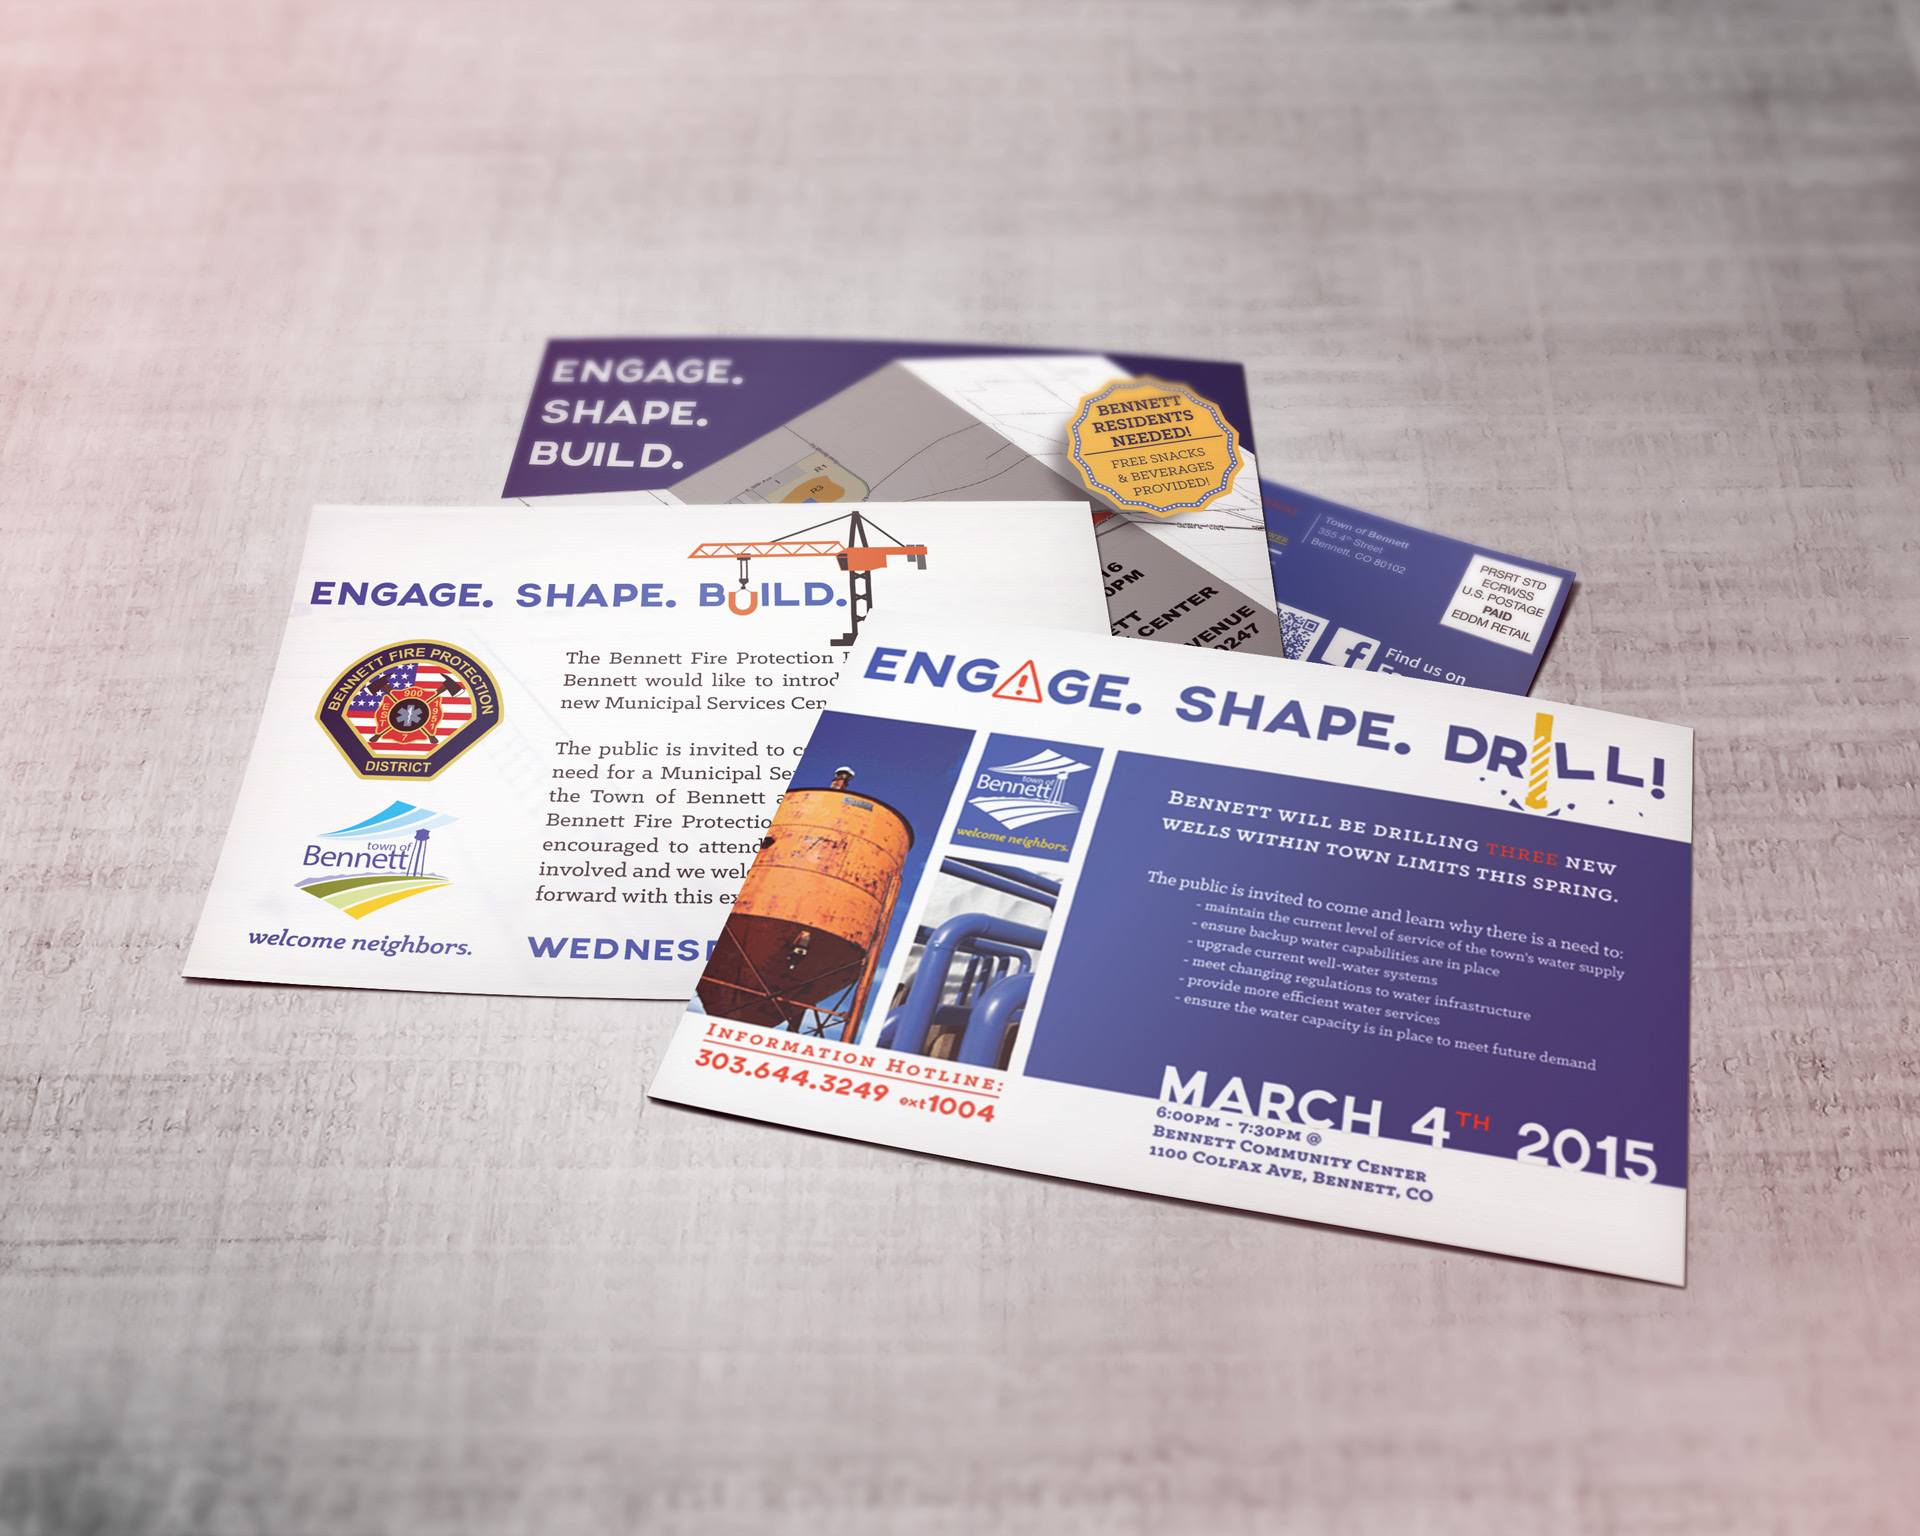 Mockup featuring postcards from Engage.Shape.Build. series